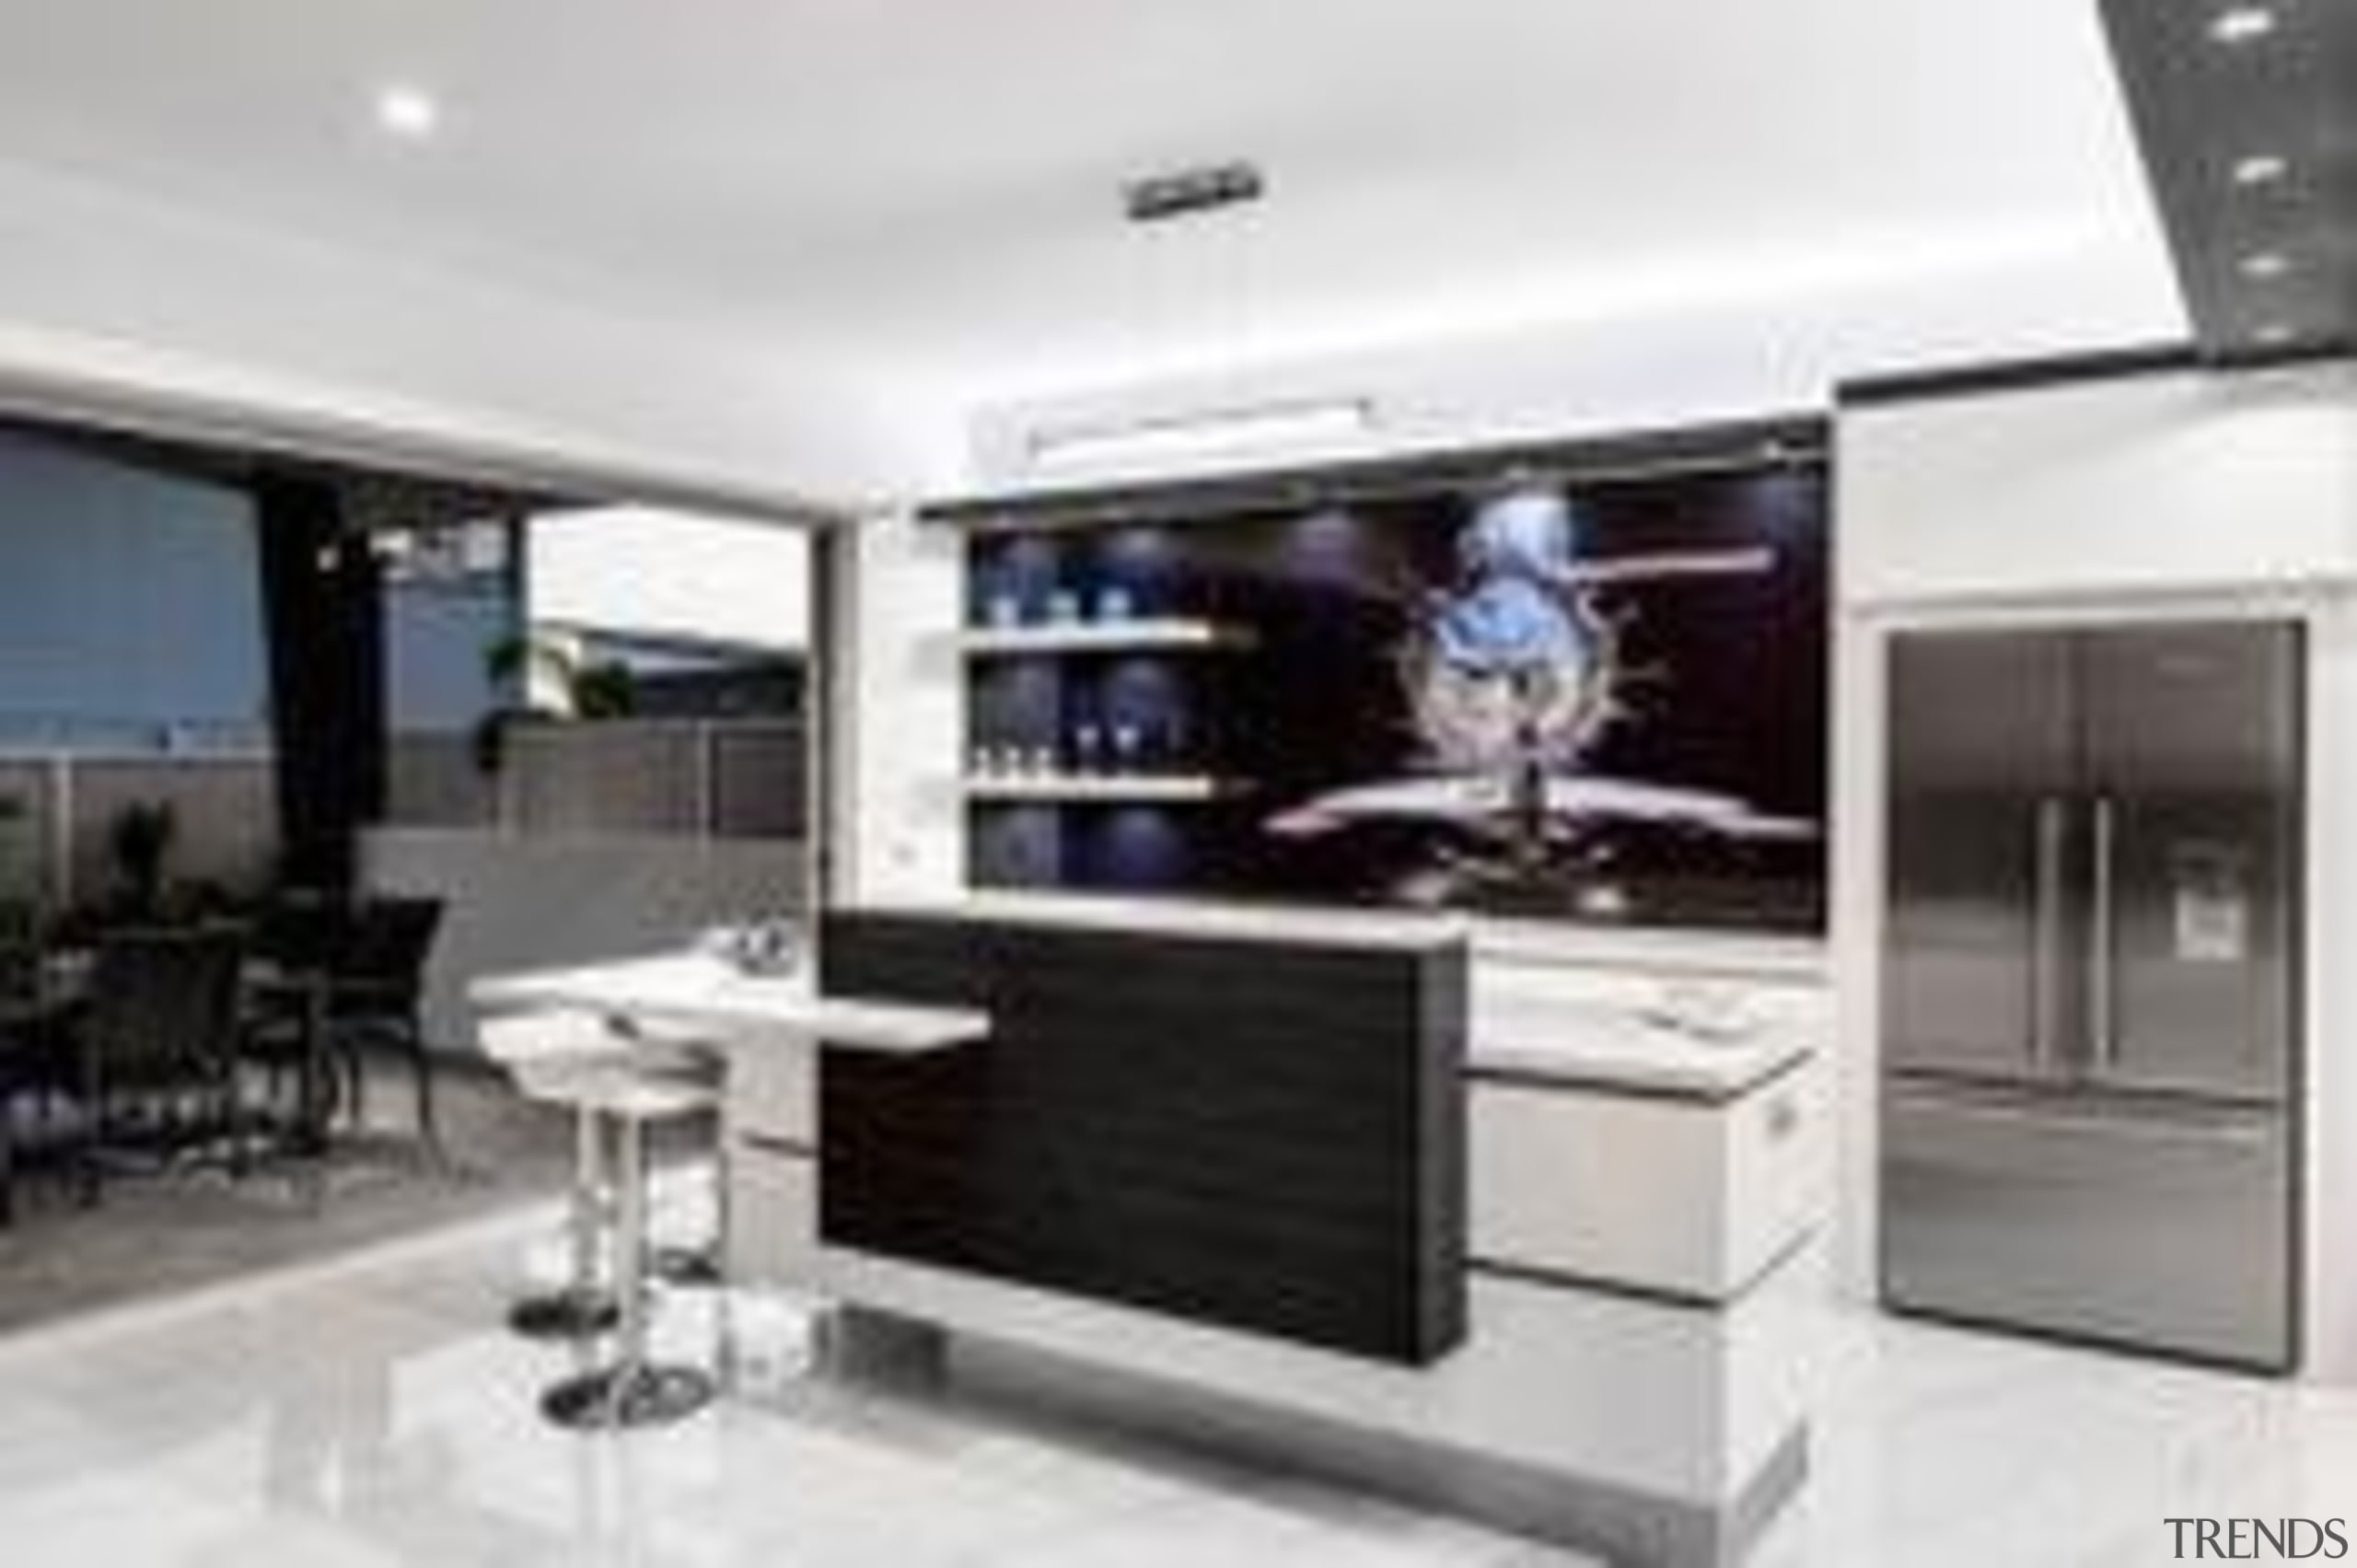 Sublime Architectural Interiors Frosty Carrina - Frosty Carrina™ countertop, interior design, kitchen, property, white